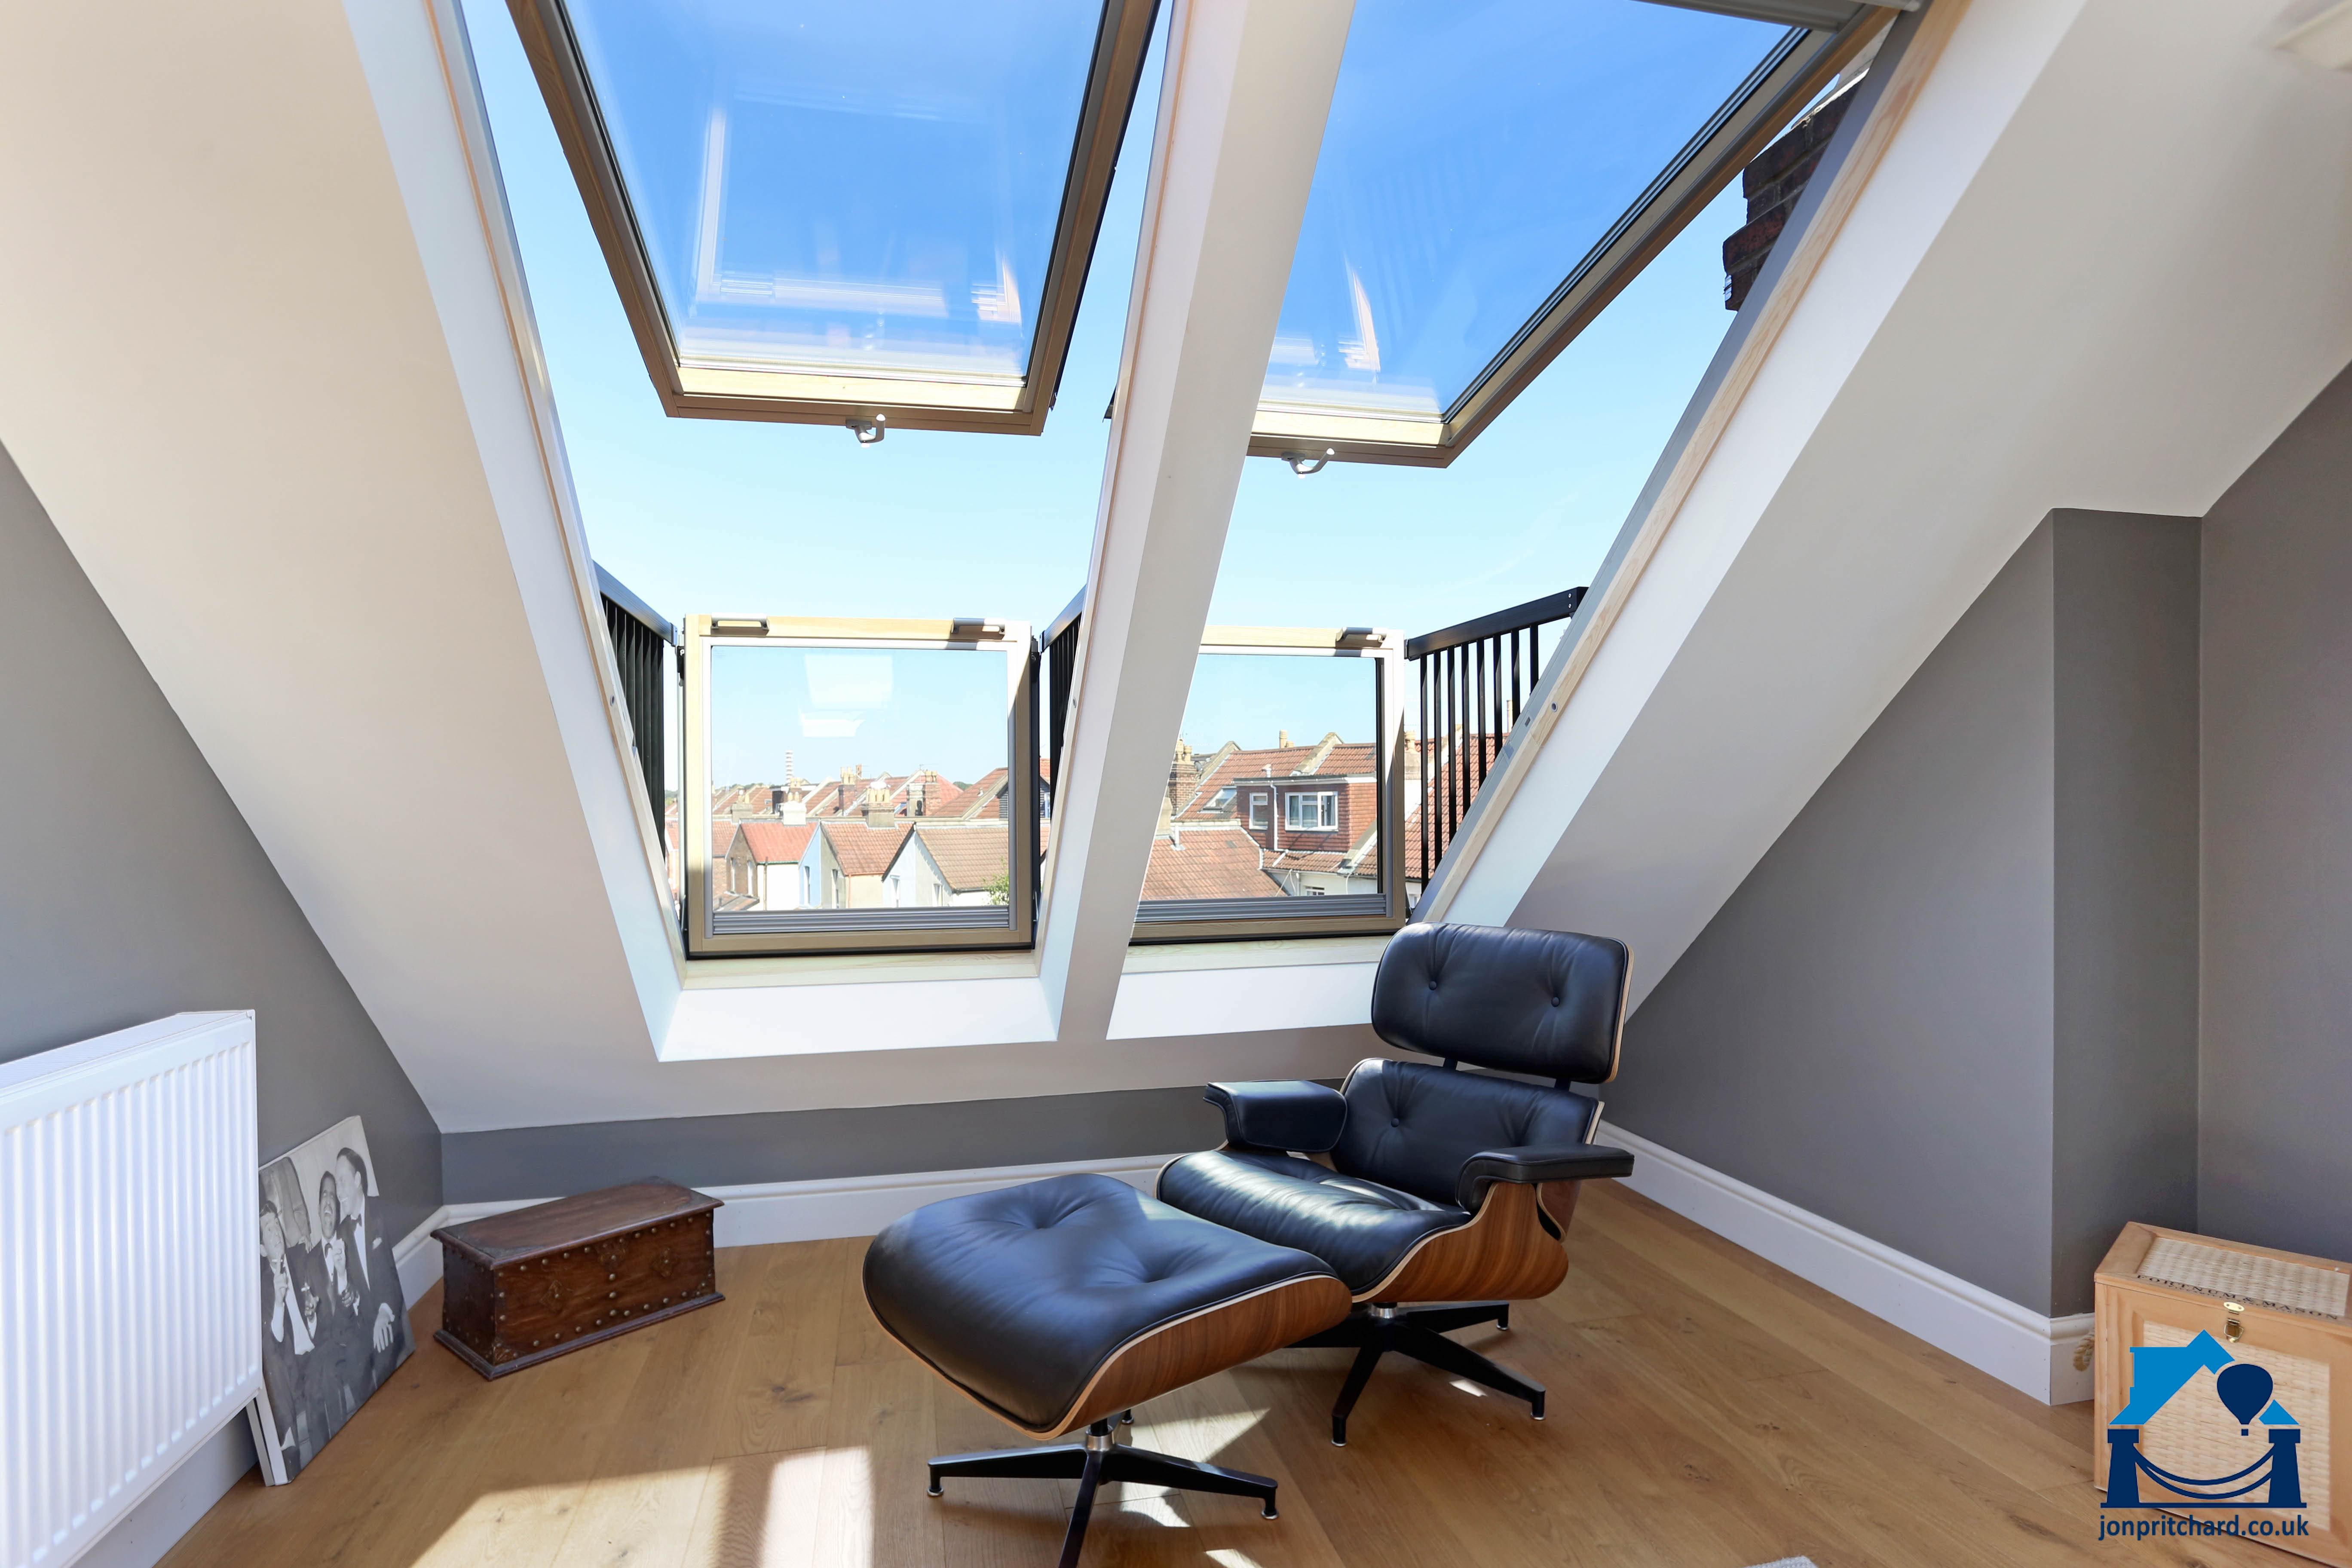 Photo showing the slopin two Velux Cabrio